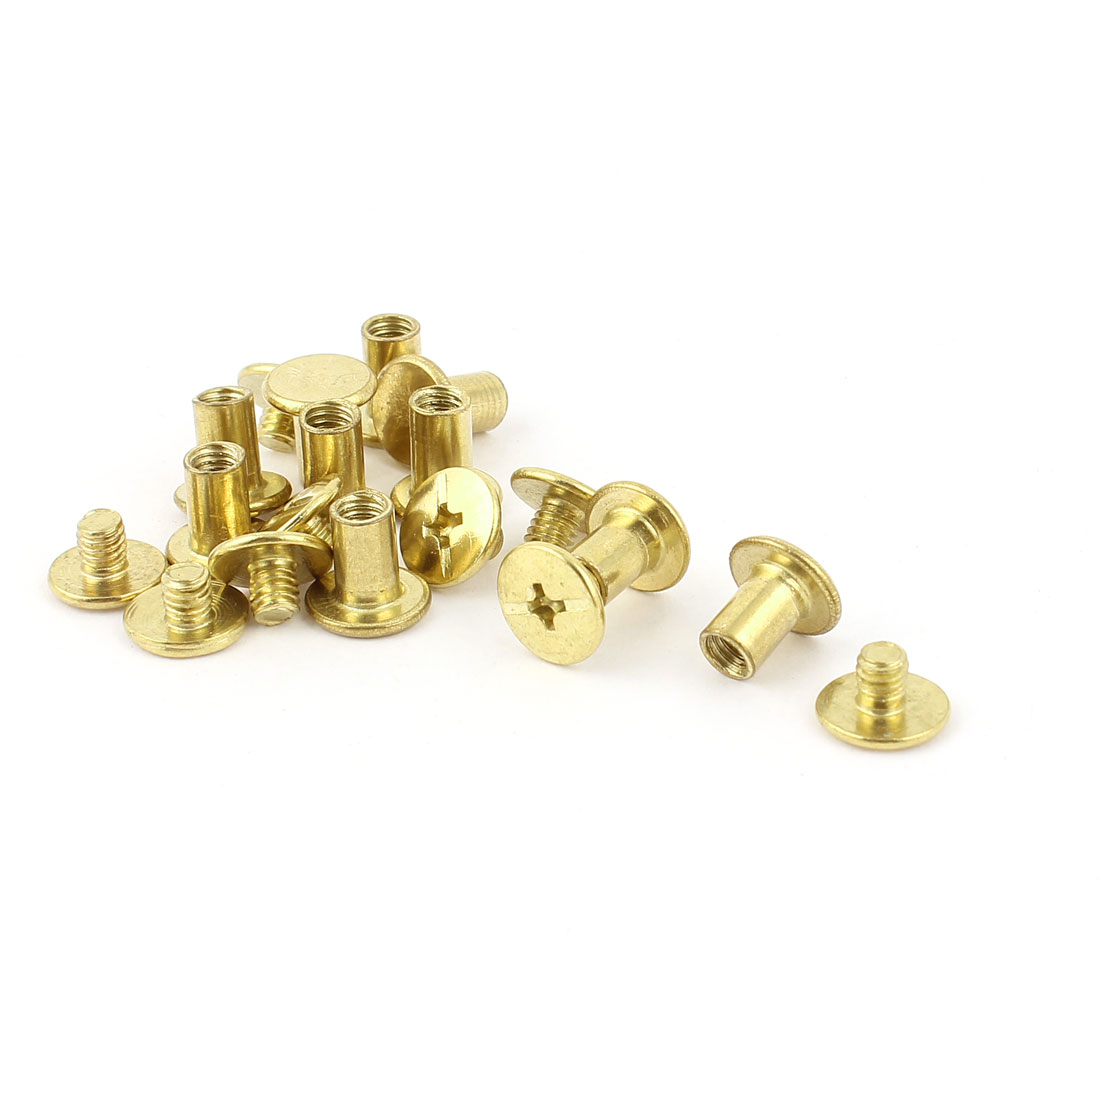 10pcs 5mmx8mm Brass Plated Binding Chicago Screw Post for Album Scrapbook